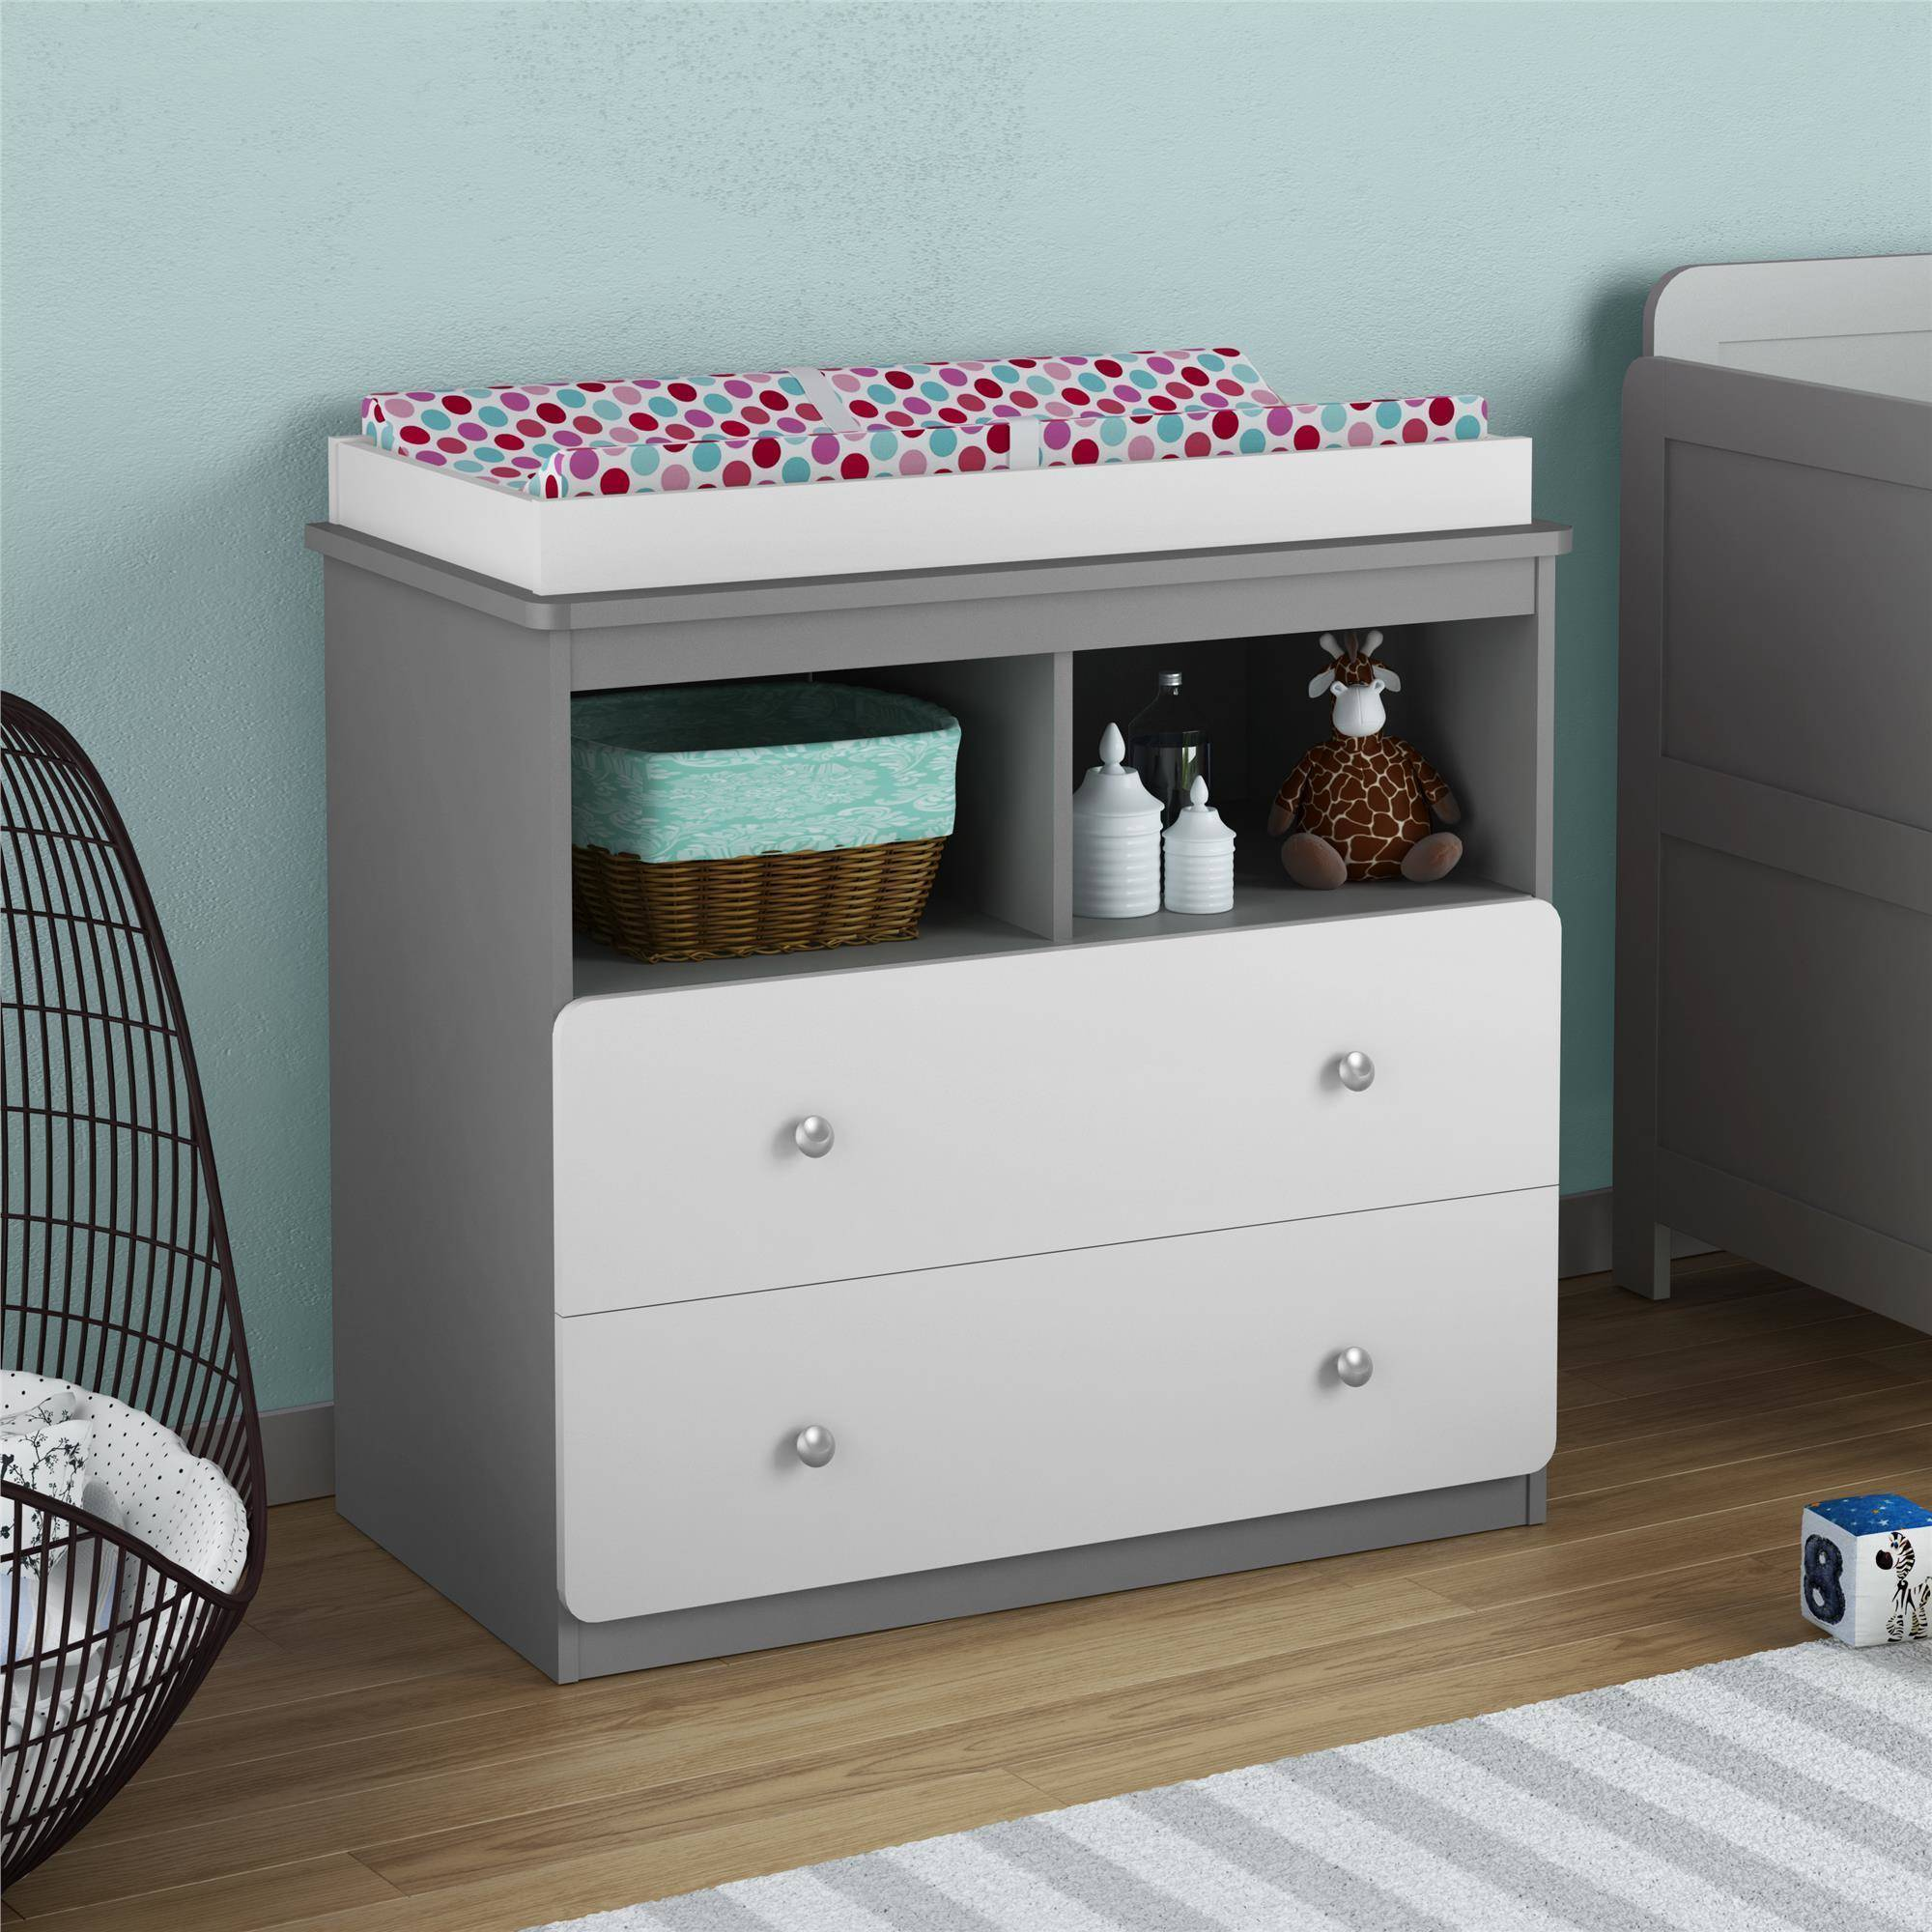 cosco willow lake changing table coffee house plankwhite  - cosco willow lake changing table coffee house plankwhite  walmartcom